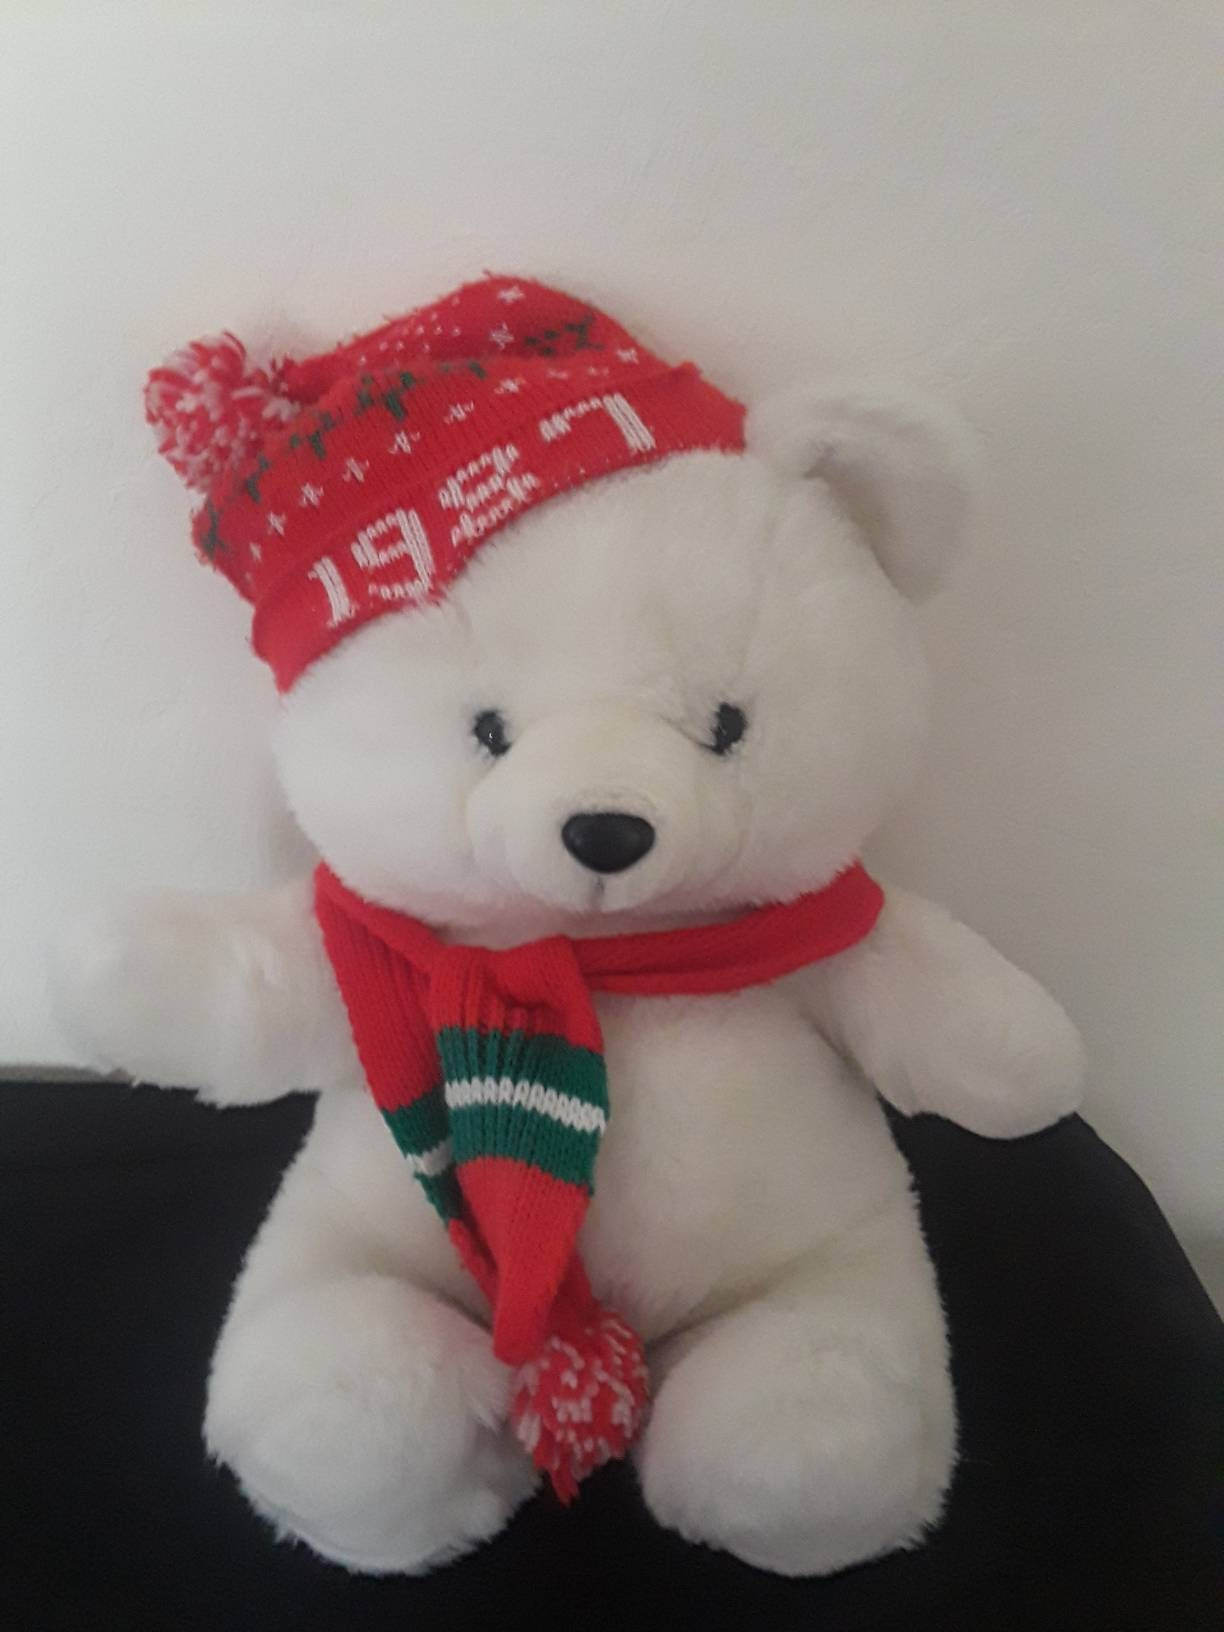 Kmart holiday bear vintage 1987 christmas collectible red hat